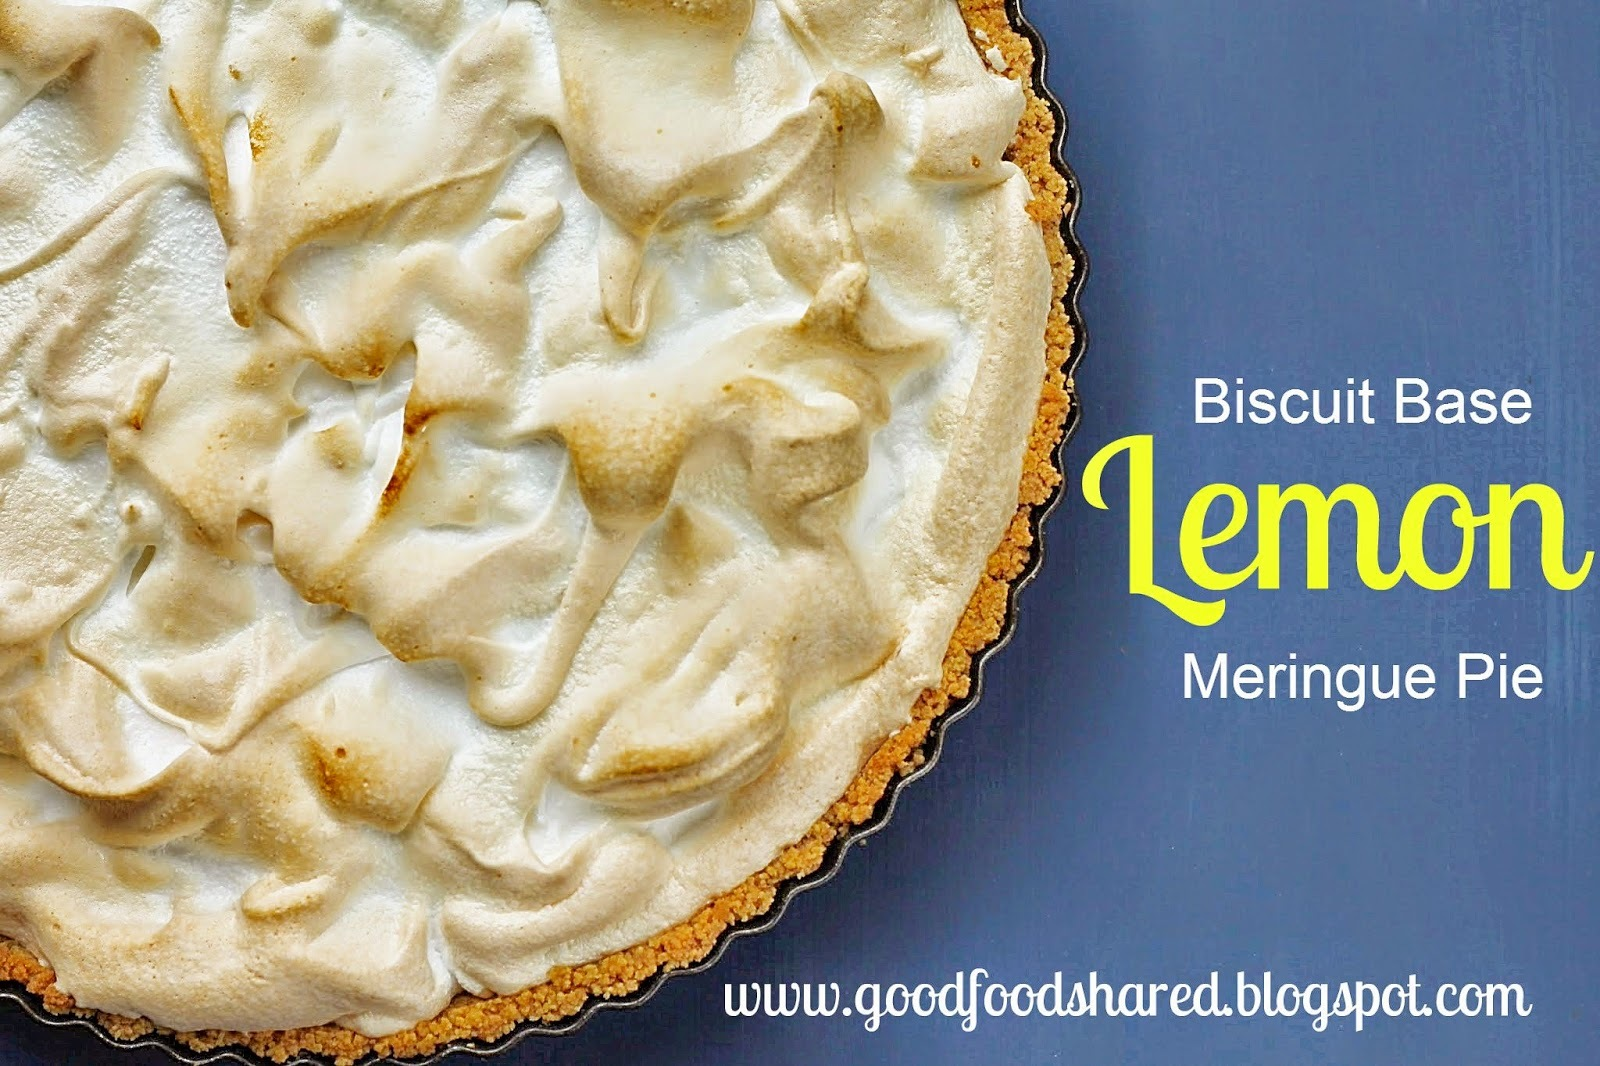 Biscuit Base Lemon Meringue Pie